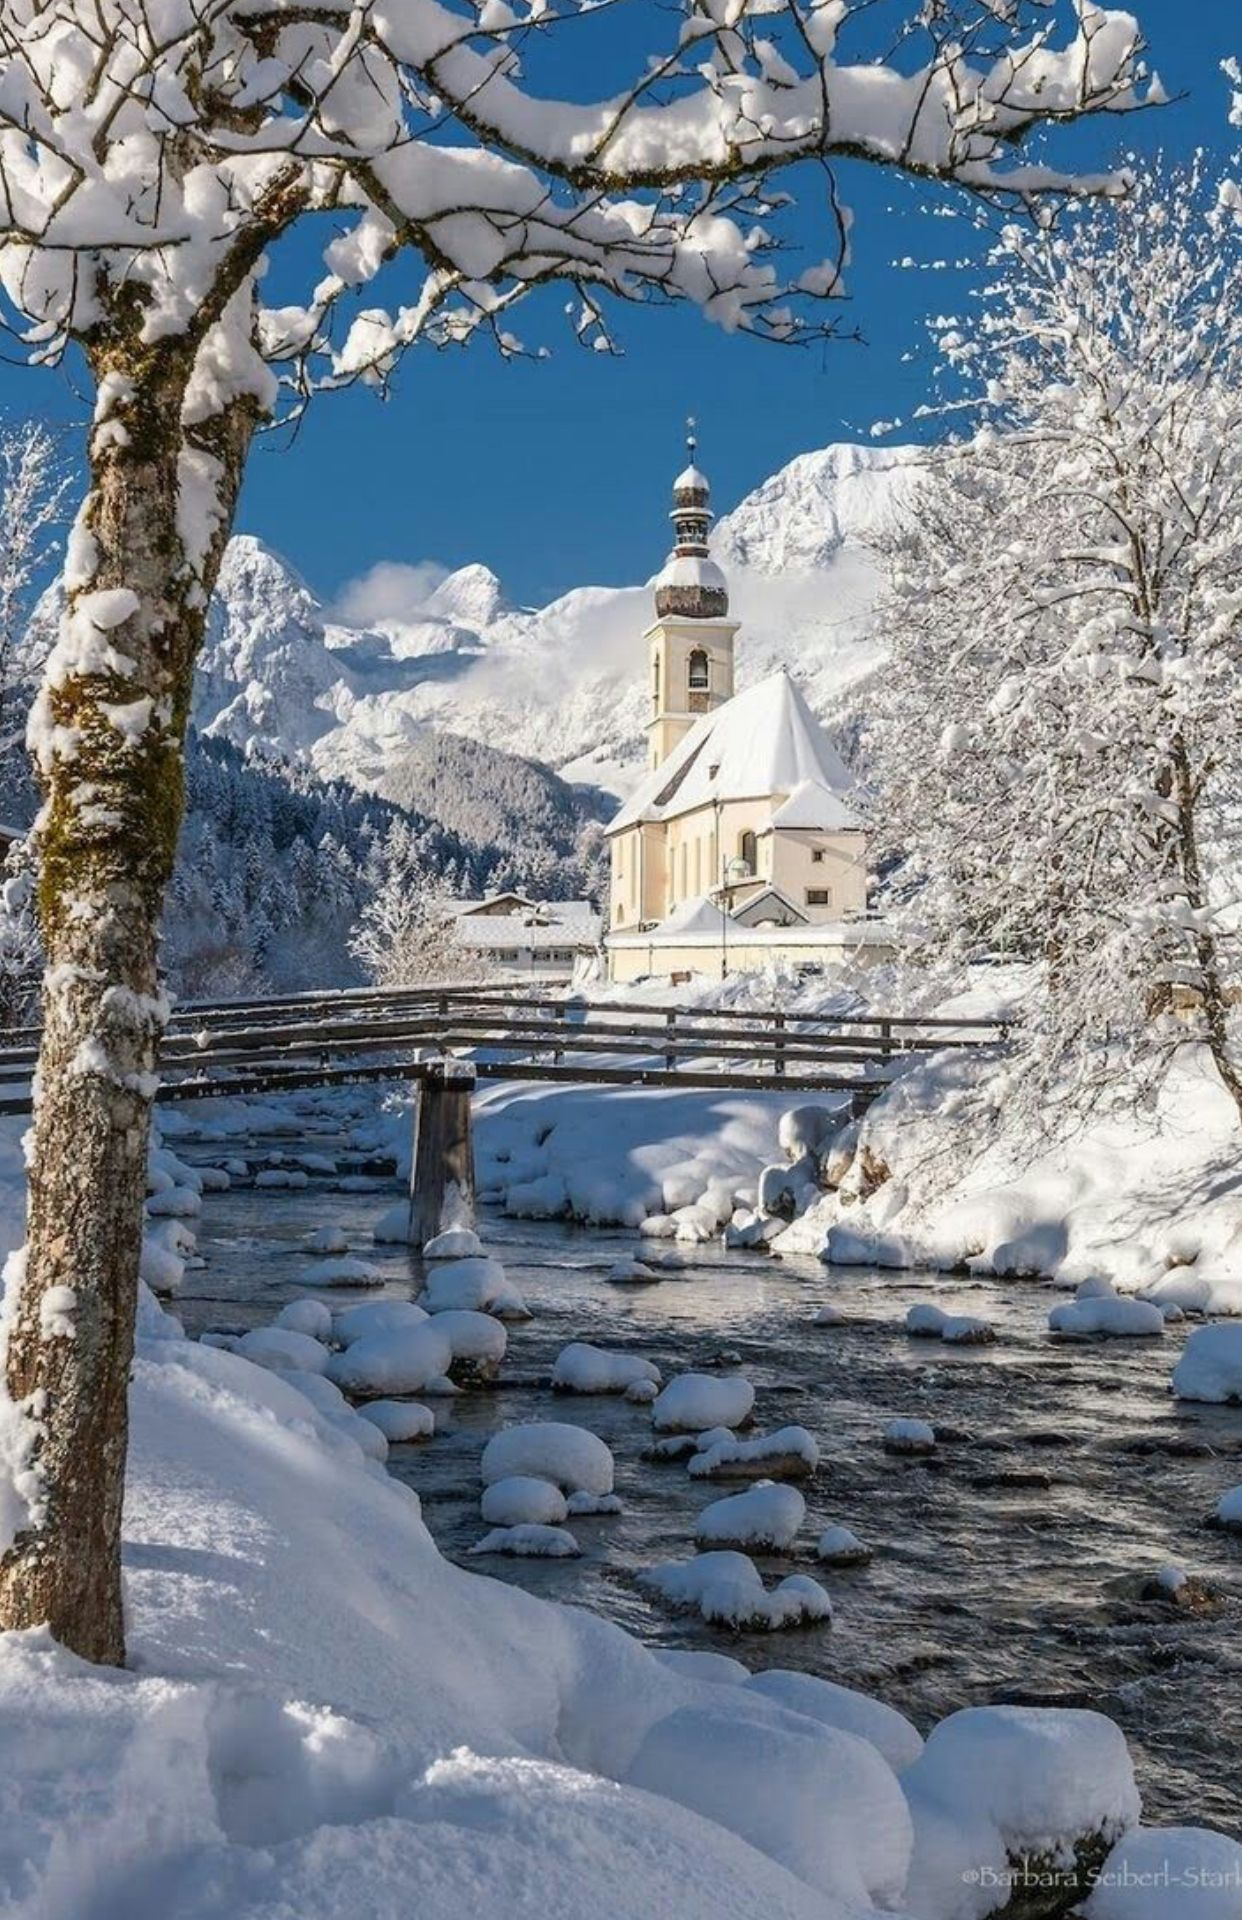 Winter Pictures, Winter Scenery